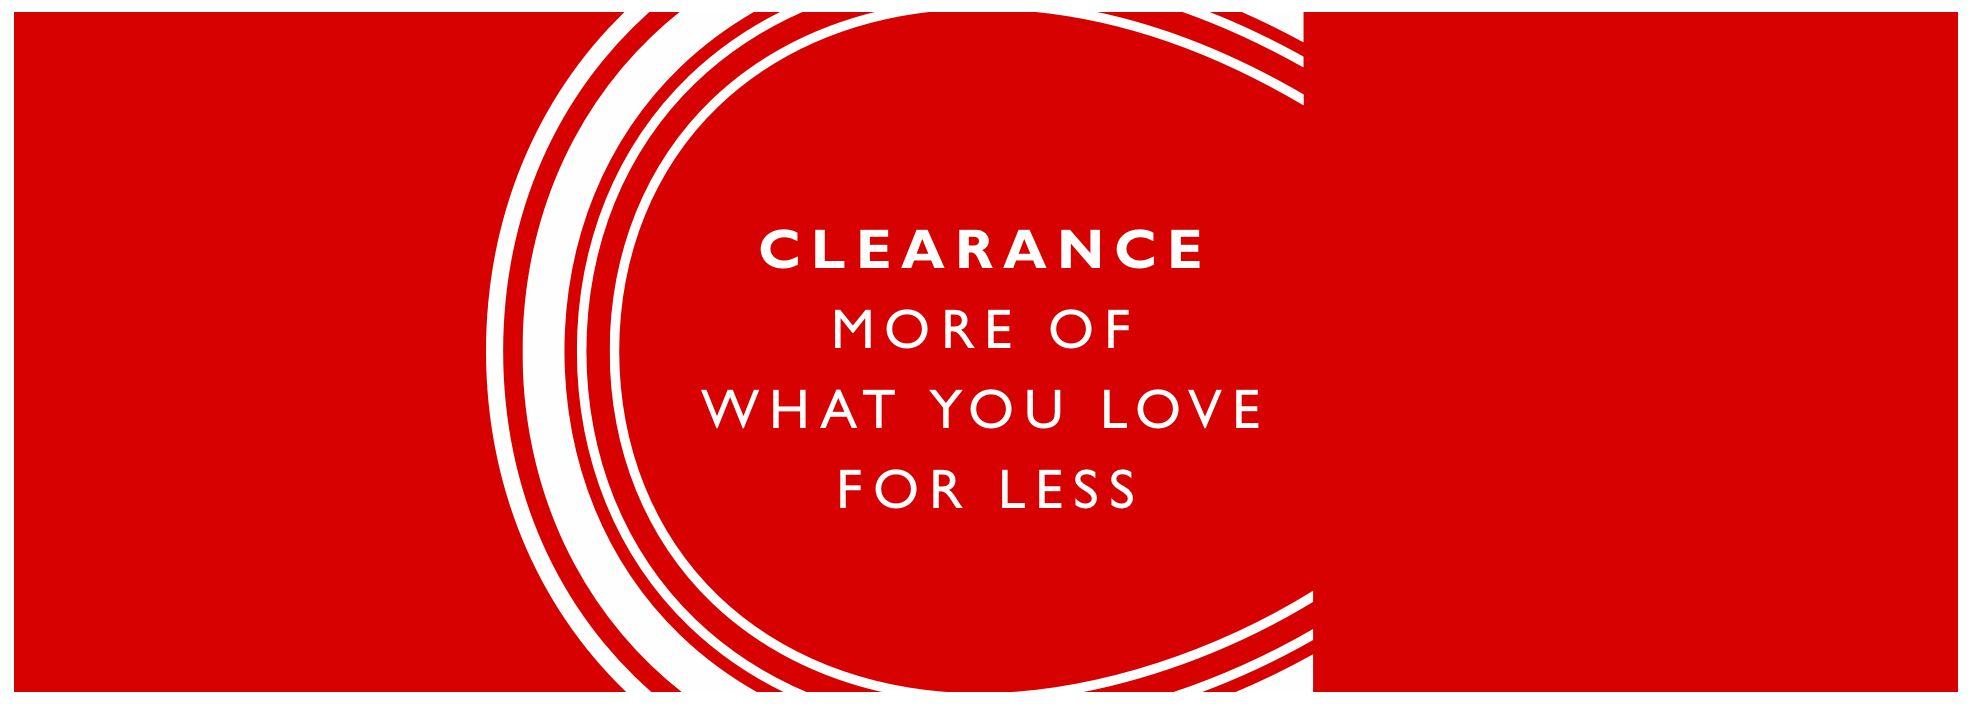 Clearance & Offers | Find Clearance Bargains | John Lewis